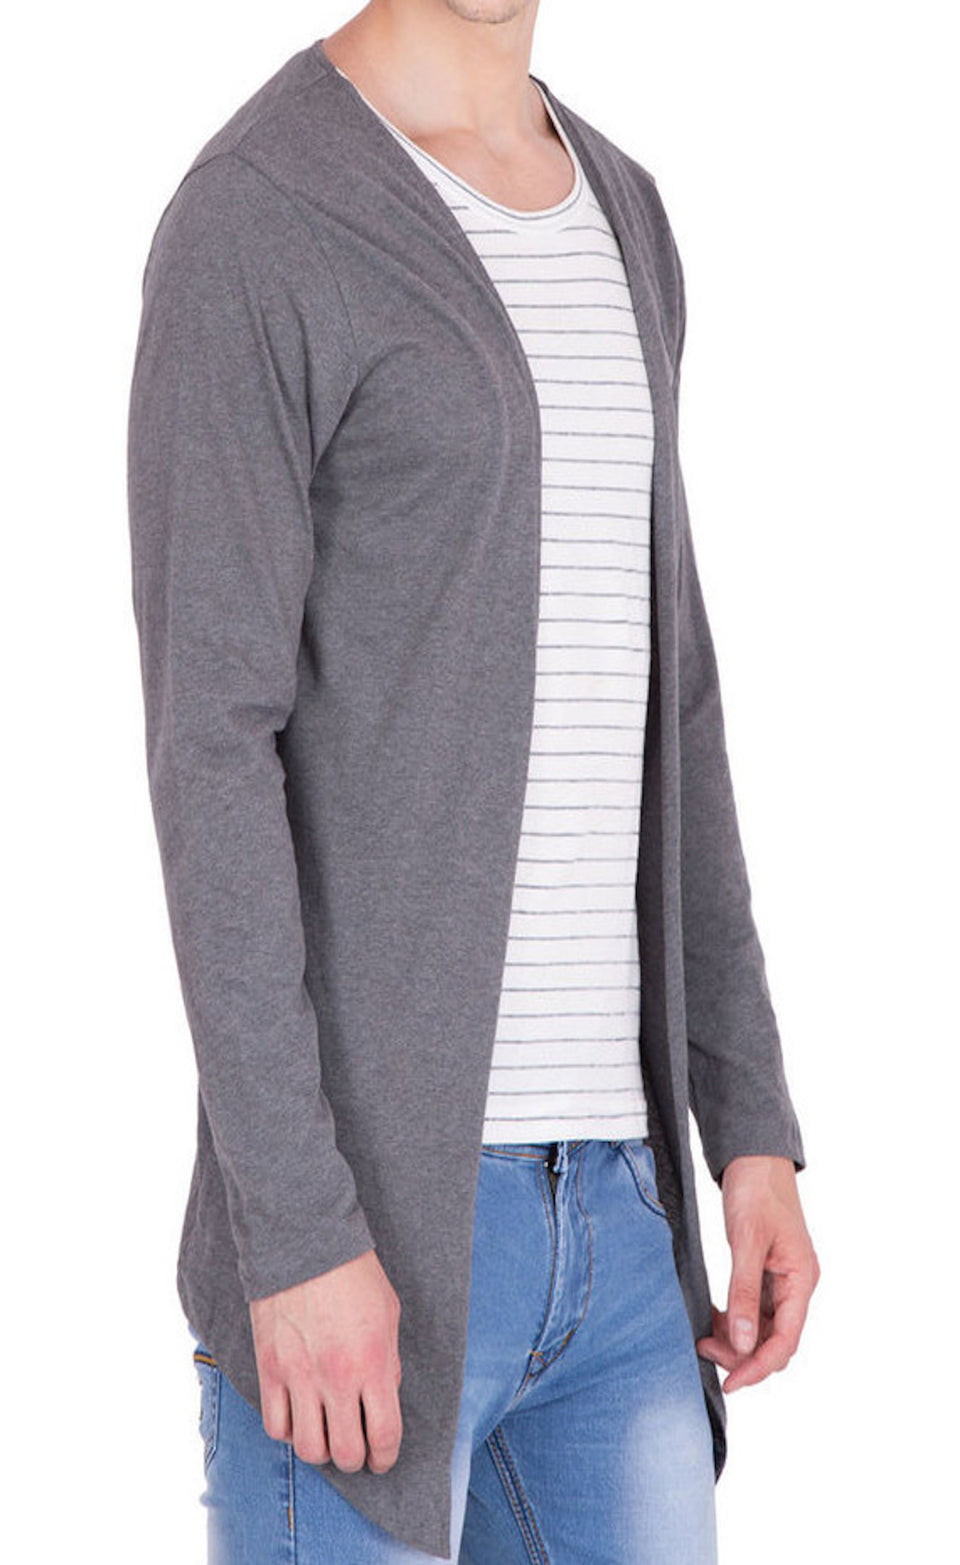 PAUSE INTERNATIONAL BRAND COTTON MEN'S SHRUG/CARDIGAN - BABBALBUY